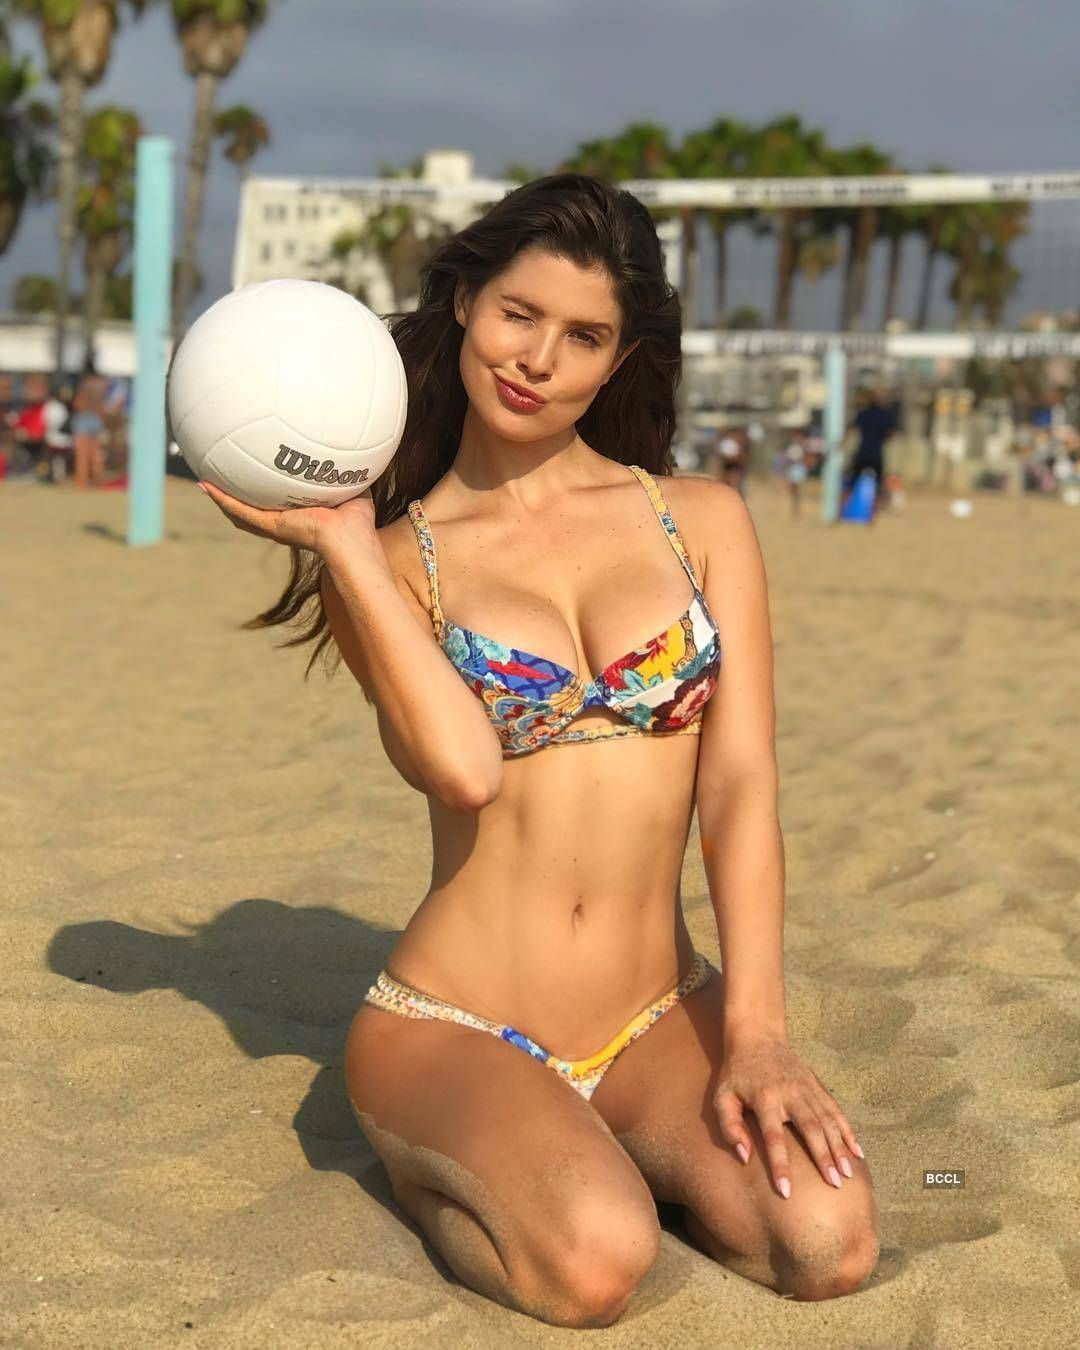 Playboy Model And Actress Amanda Cerny S Instagram Pictures Will